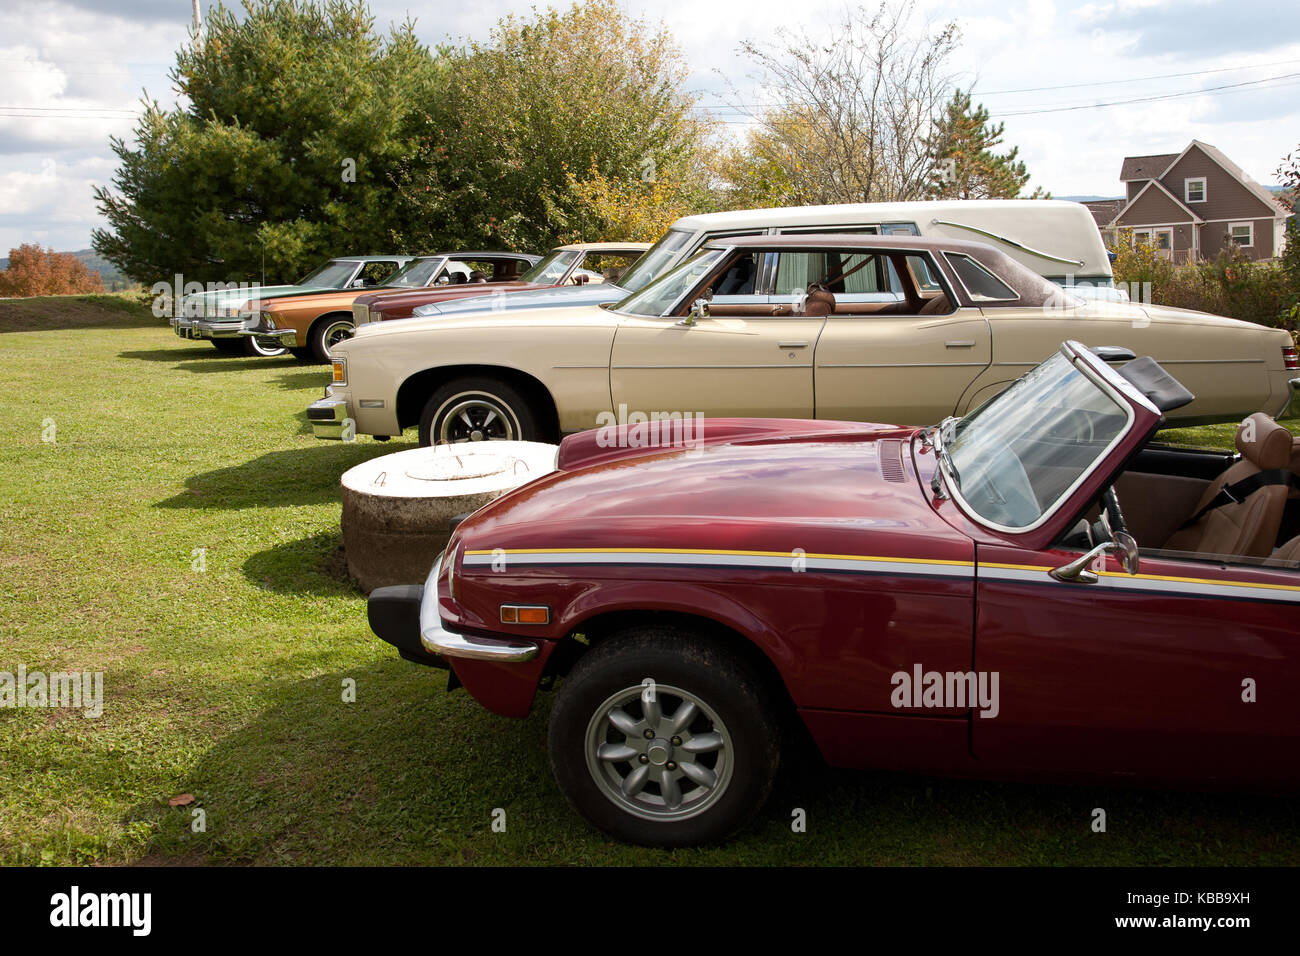 Old Classic Cars Stock Photos & Old Classic Cars Stock Images - Alamy